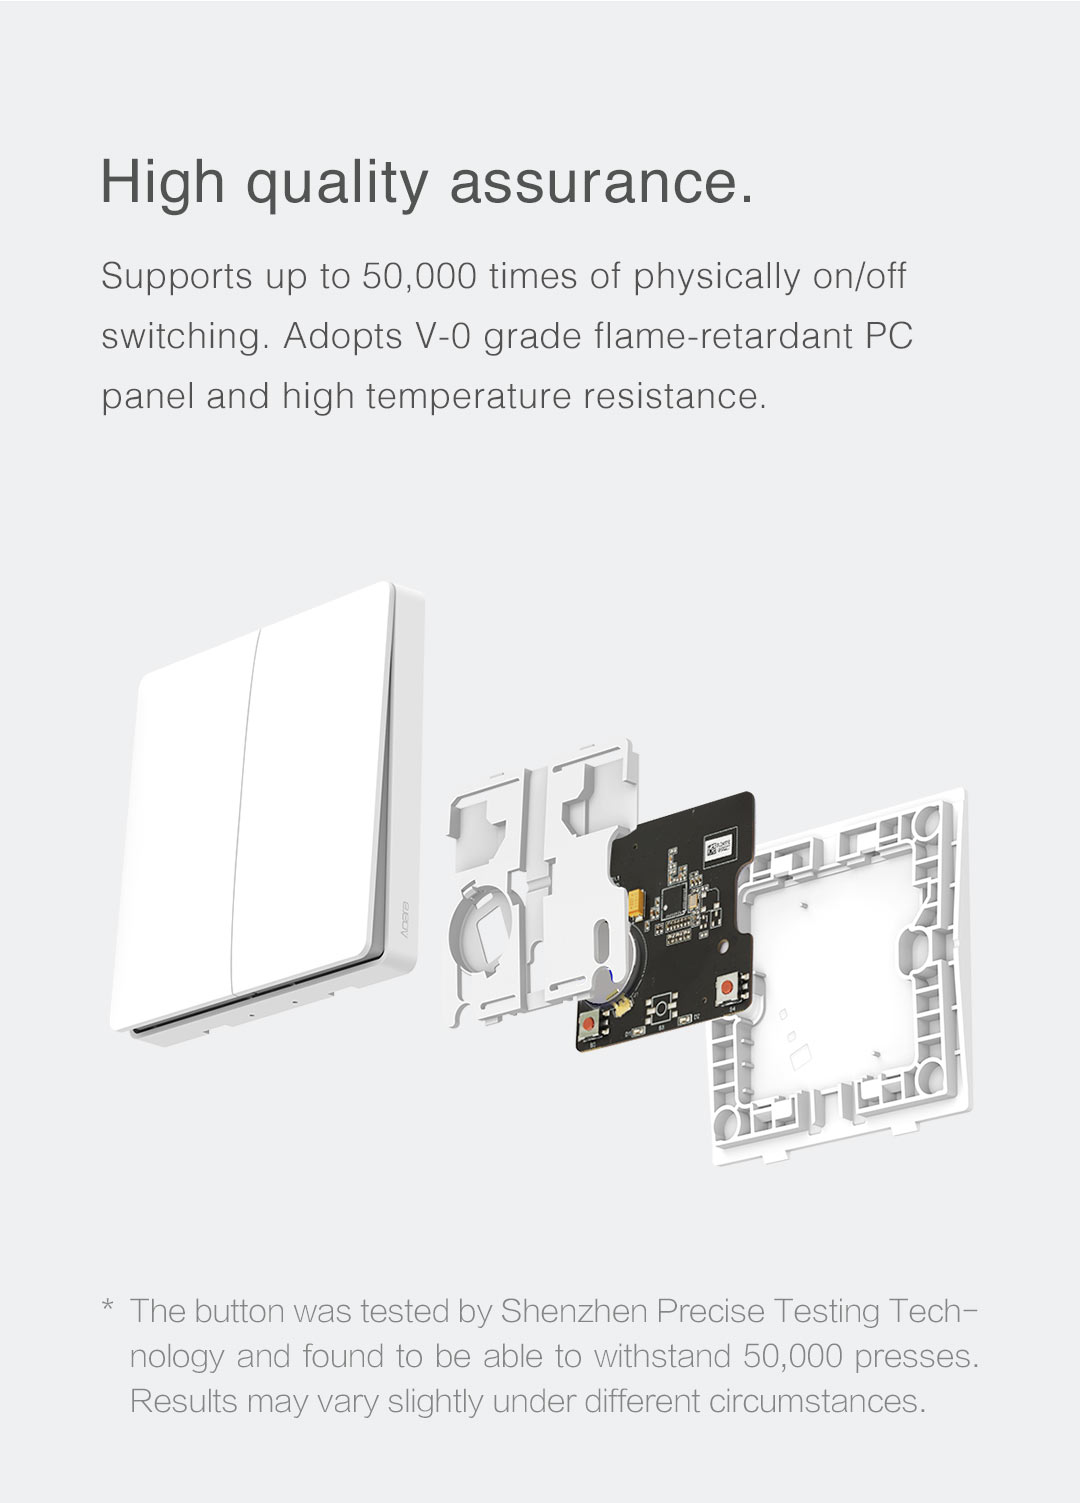 Aqara wireless light switch supports up to 50,000 presses and allows for high temperature resistance